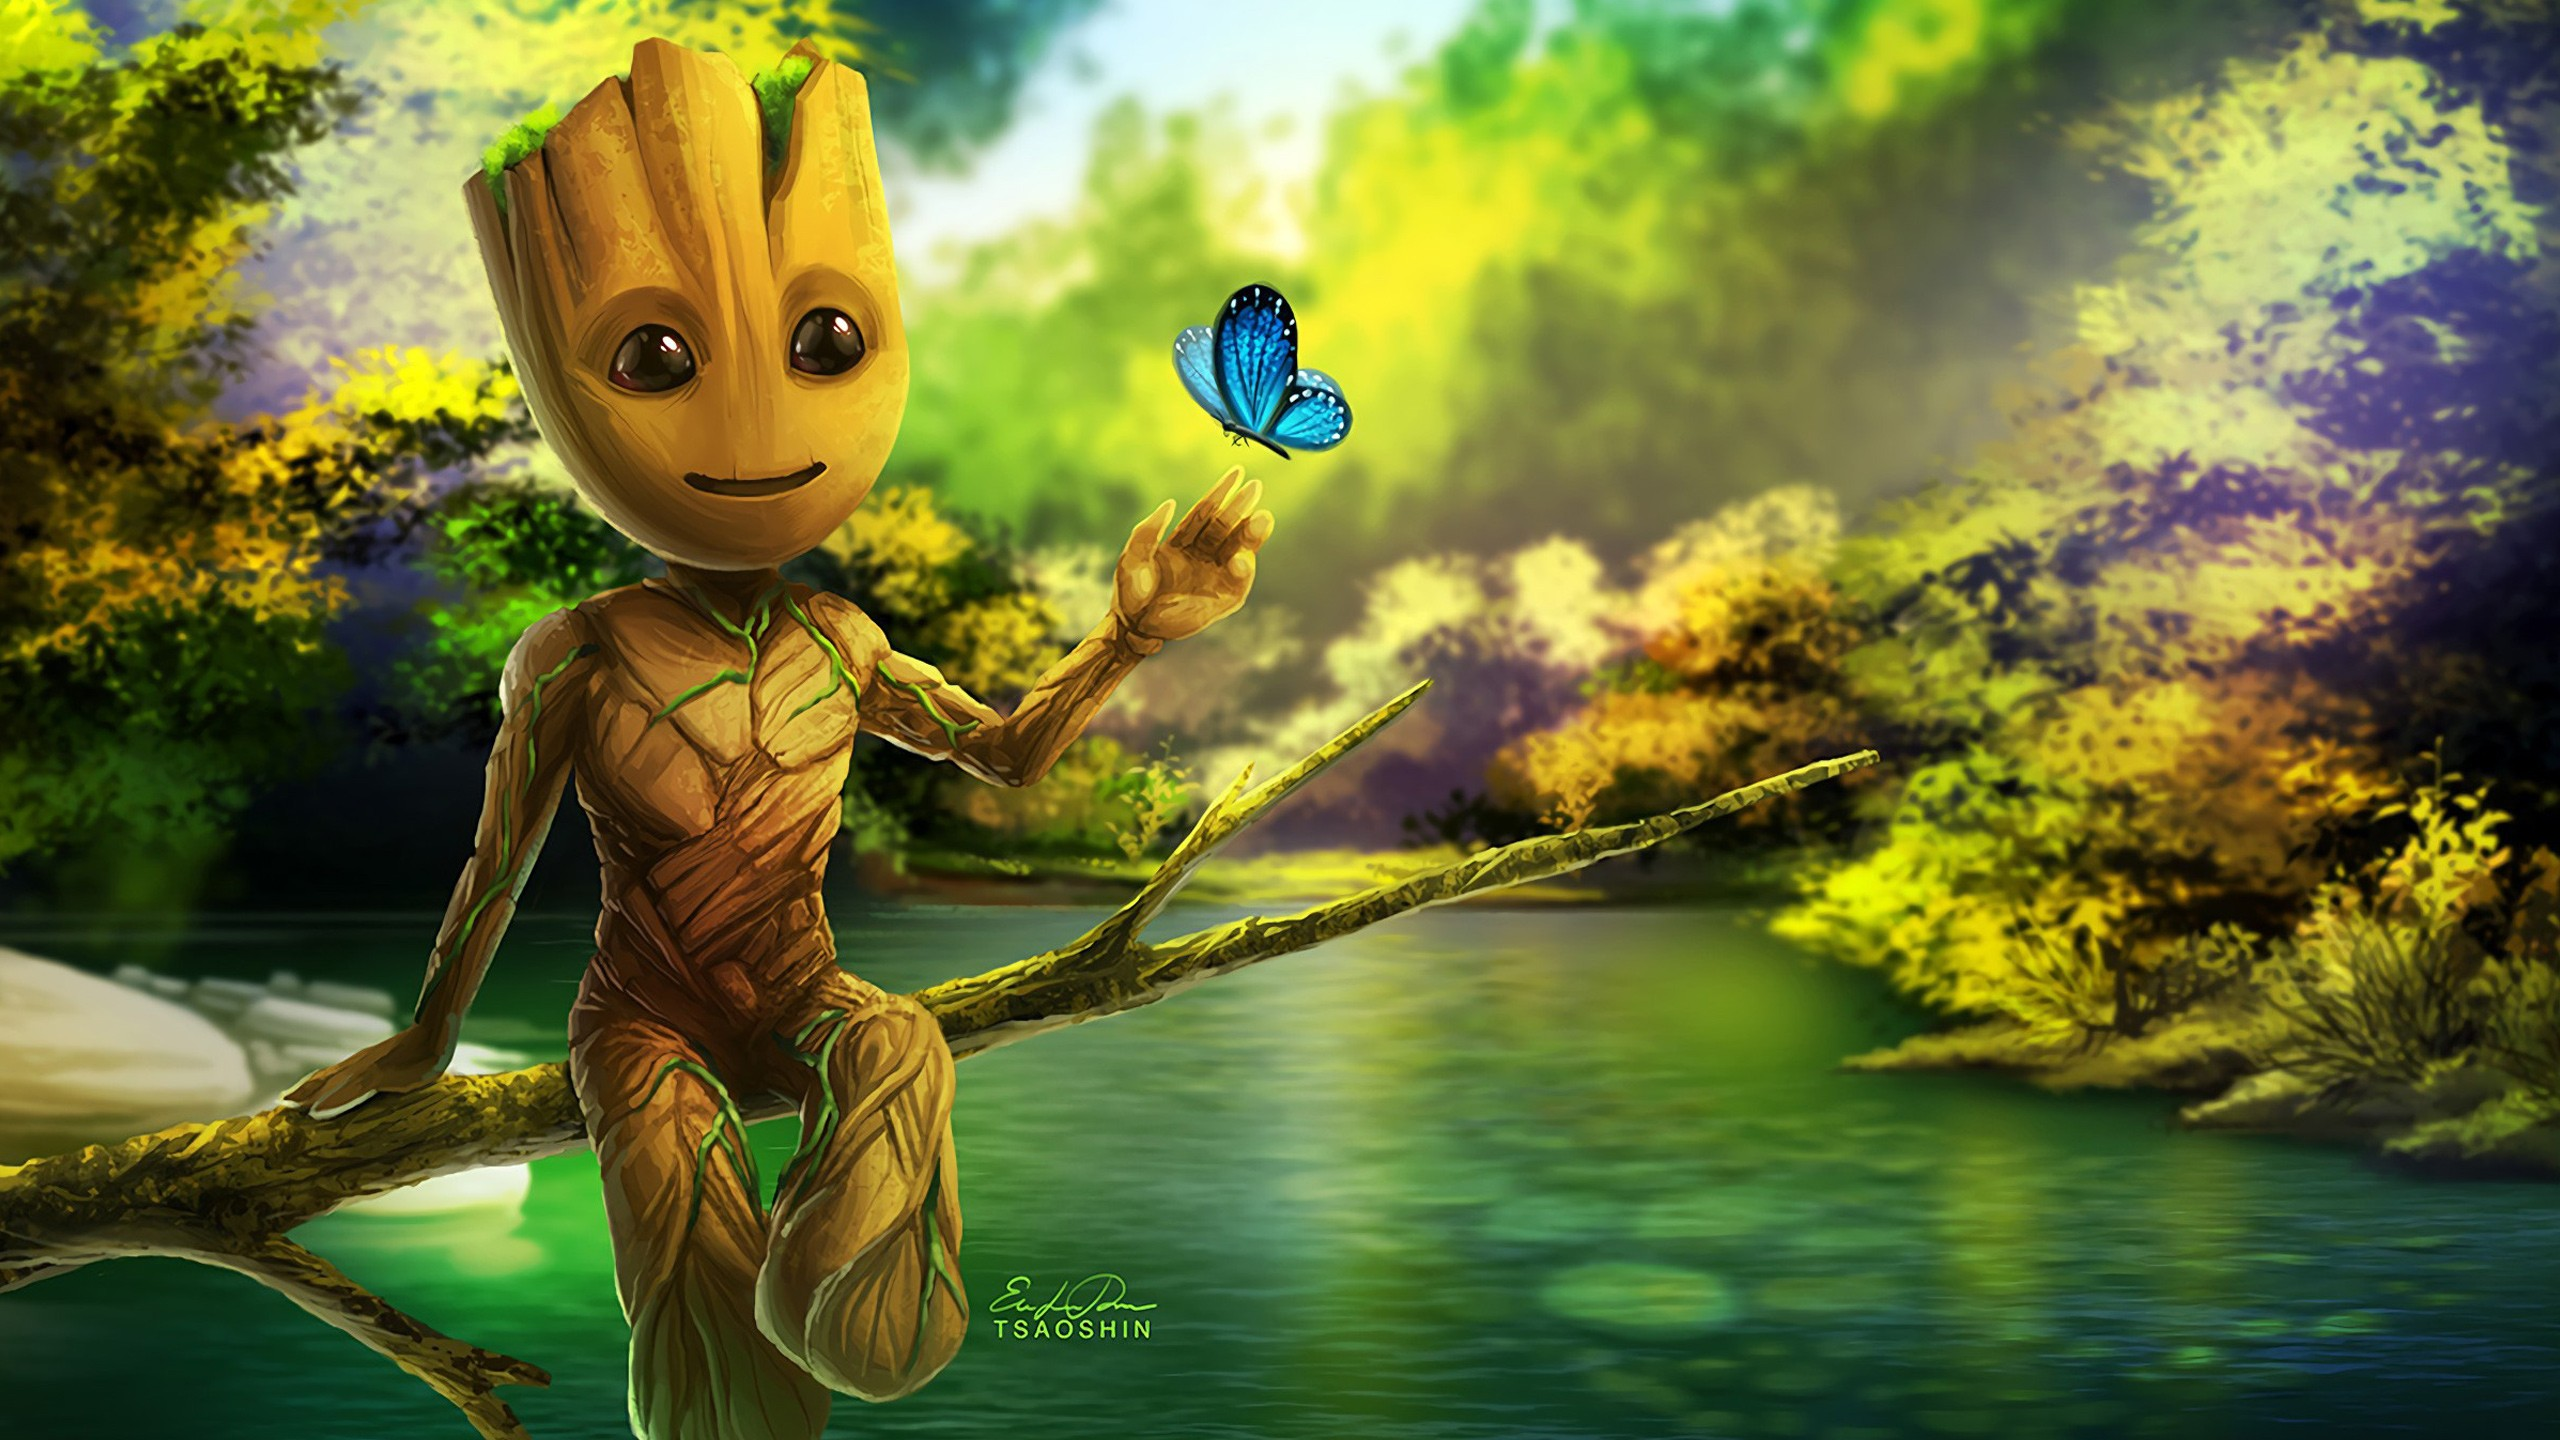 Cute Baby Ultra Hd Wallpapers Baby Groot Artwork Wallpapers Hd Wallpapers Id 20250